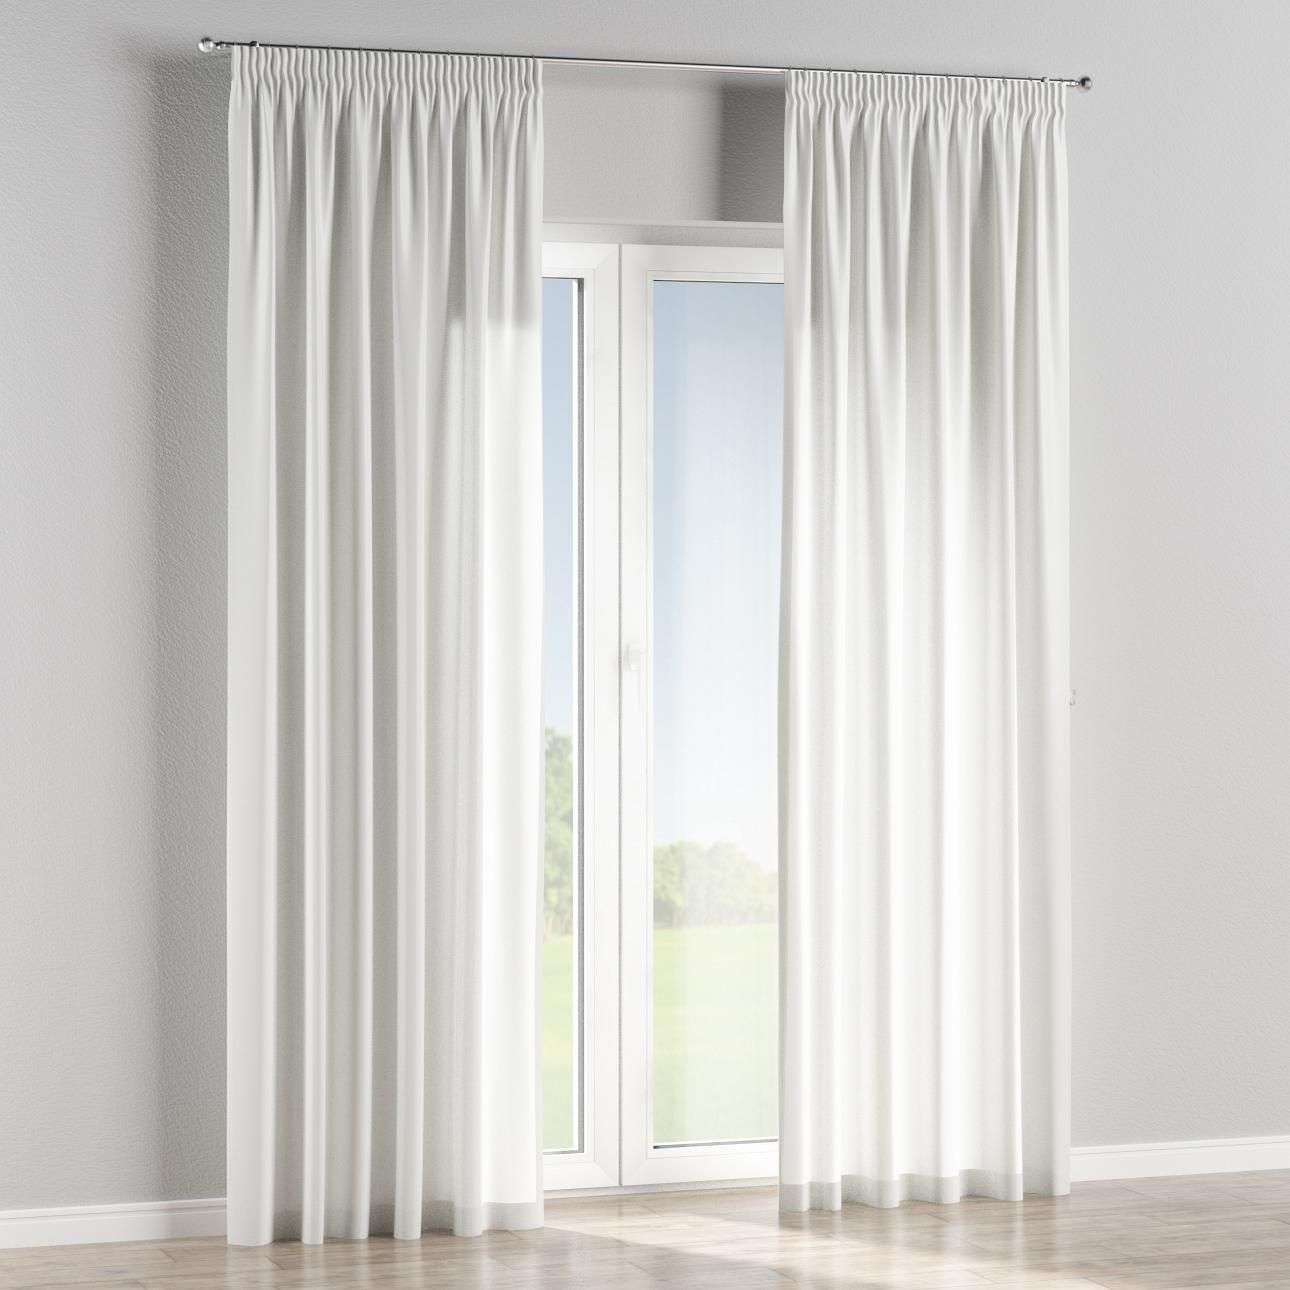 Pencil pleat lined curtains in collection Bristol, fabric: 126-09